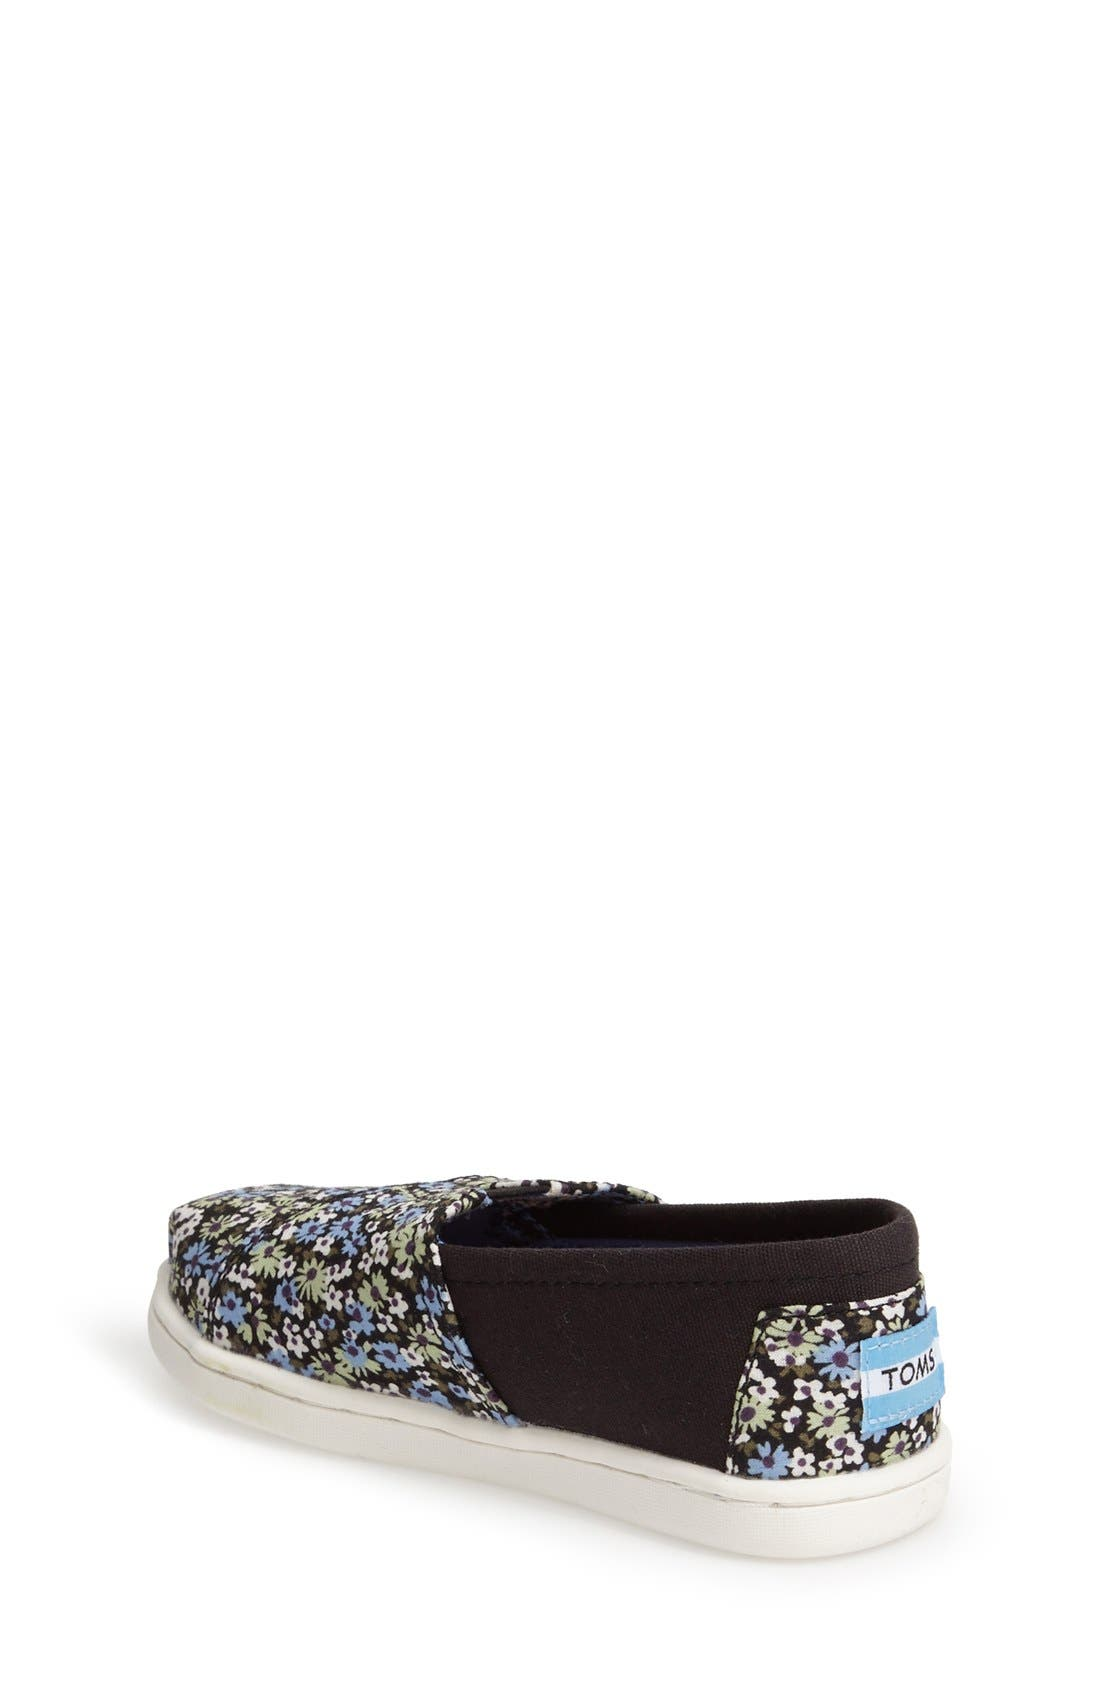 'Classic - Black Canvas Ditsy Floral' Slip-On,                             Alternate thumbnail 2, color,                             001